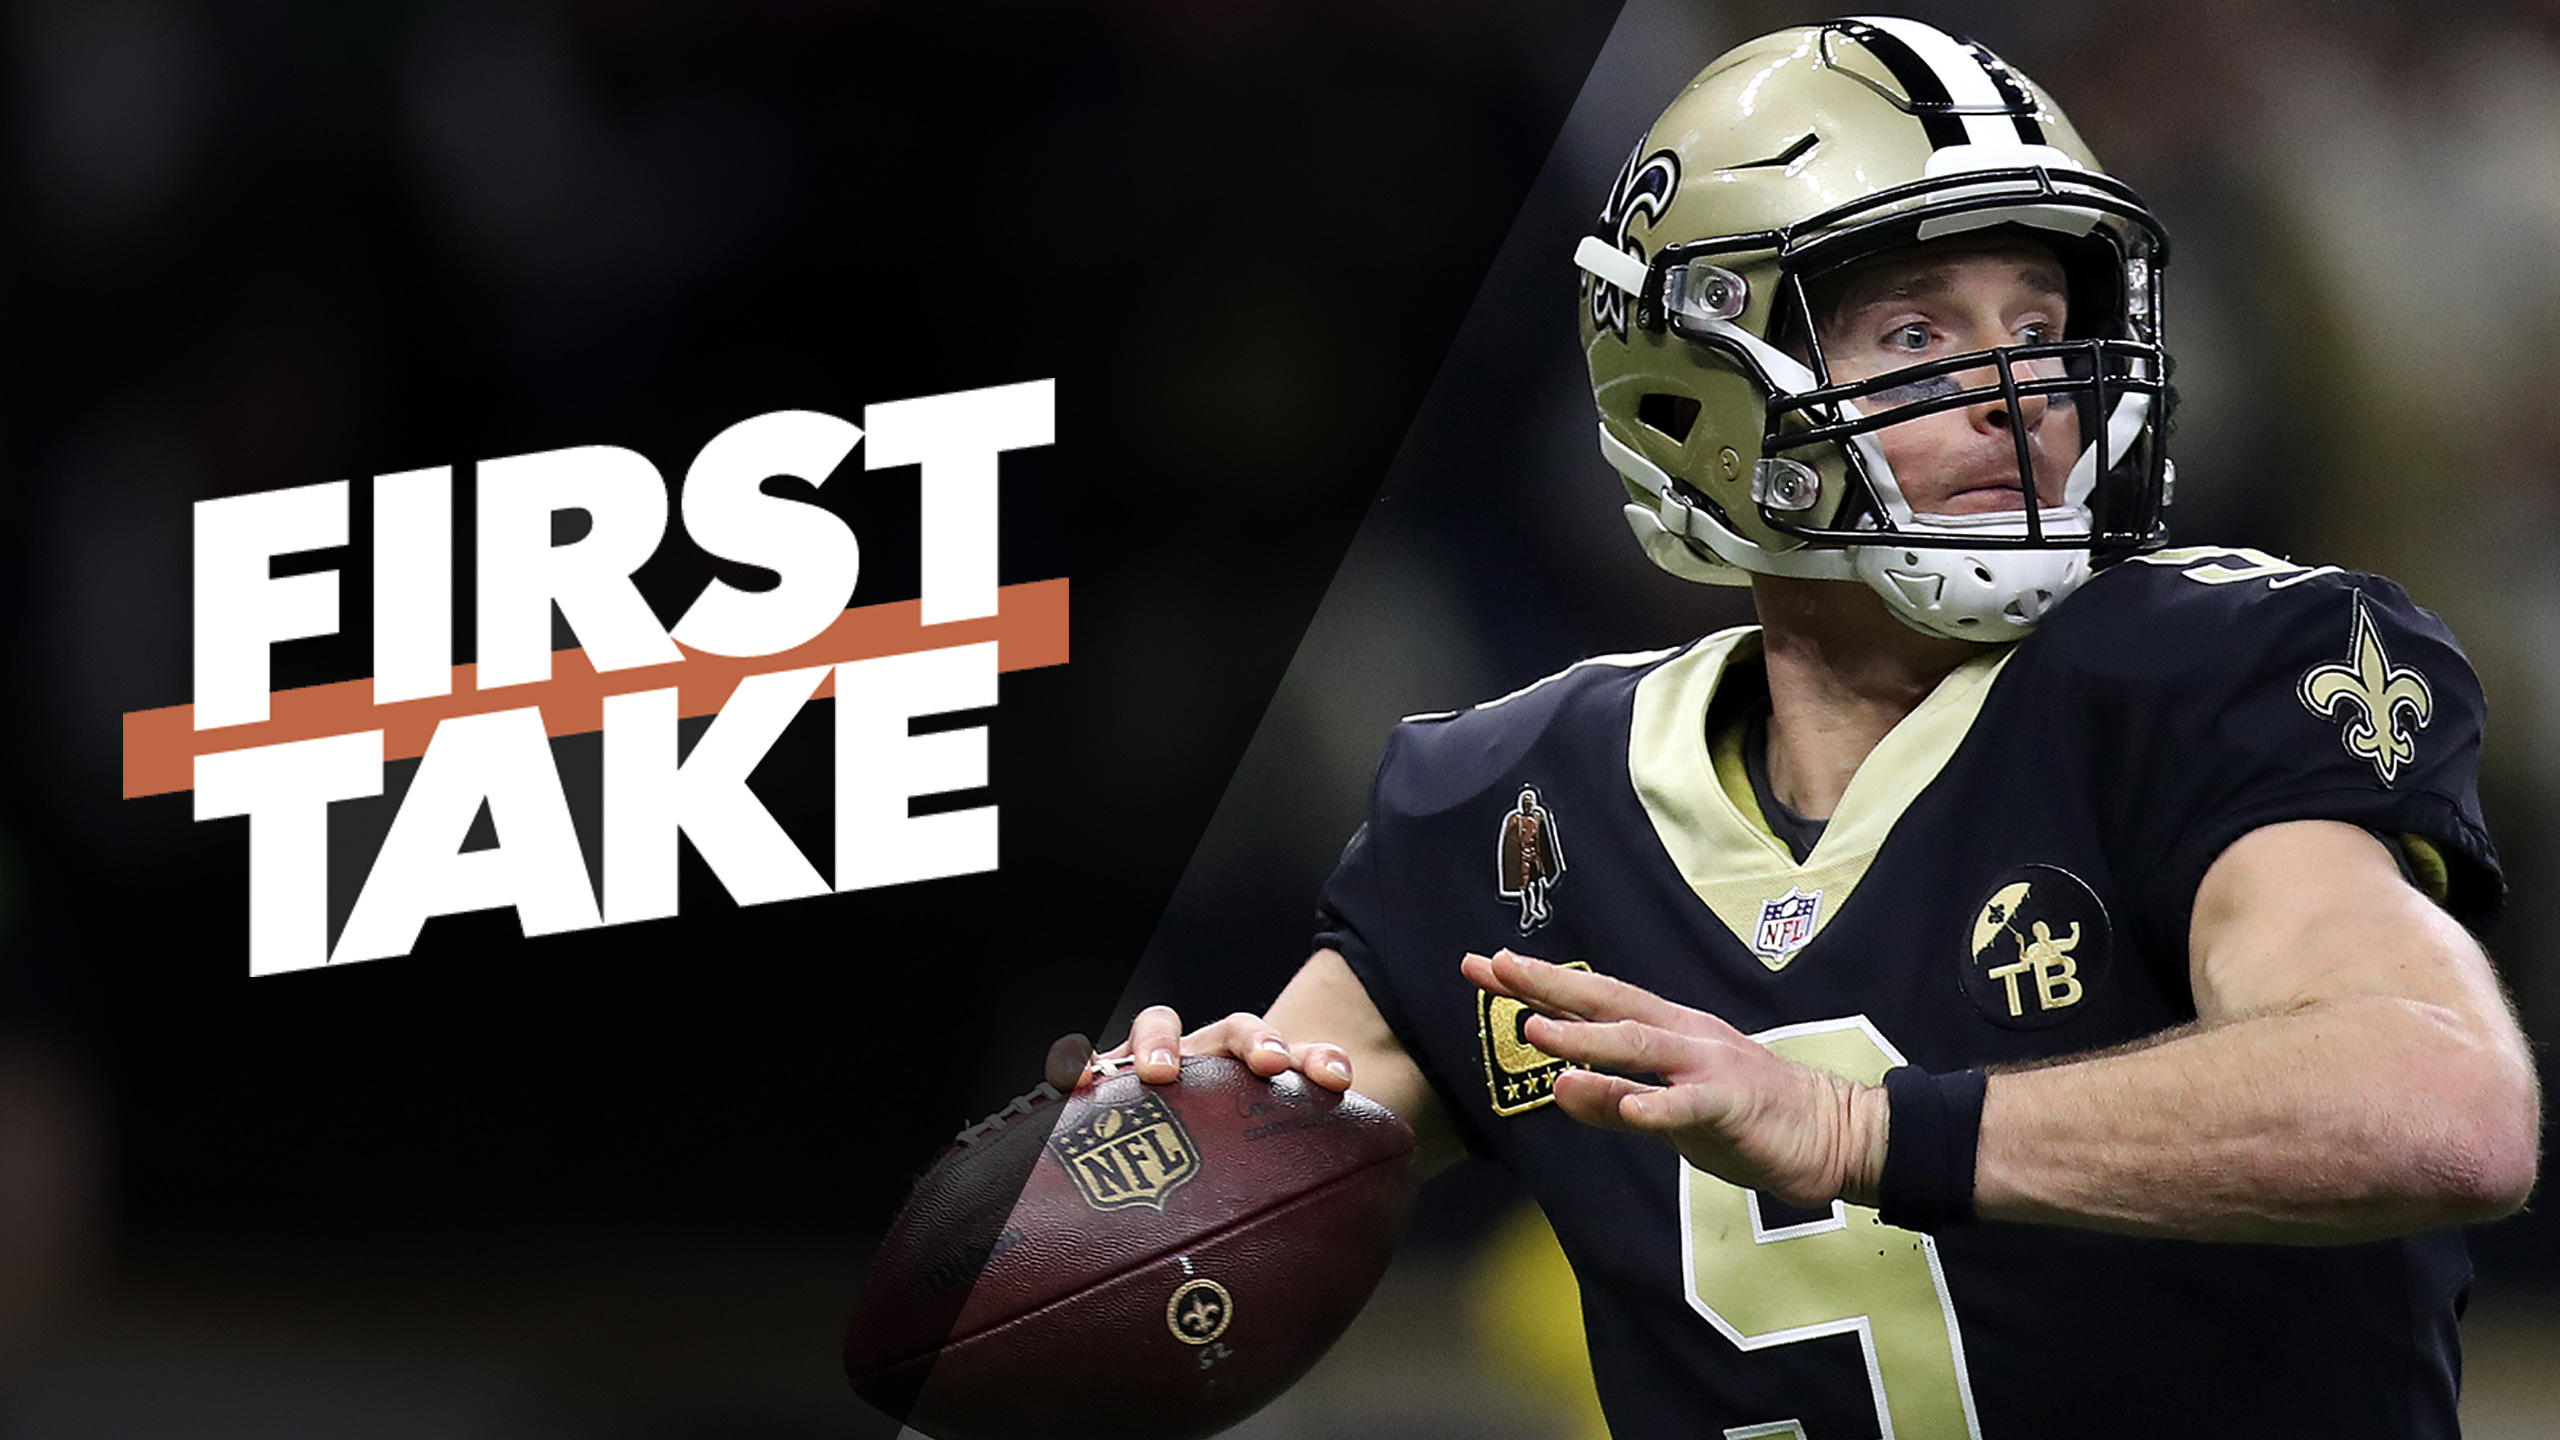 Fri, 1/18 - First Take